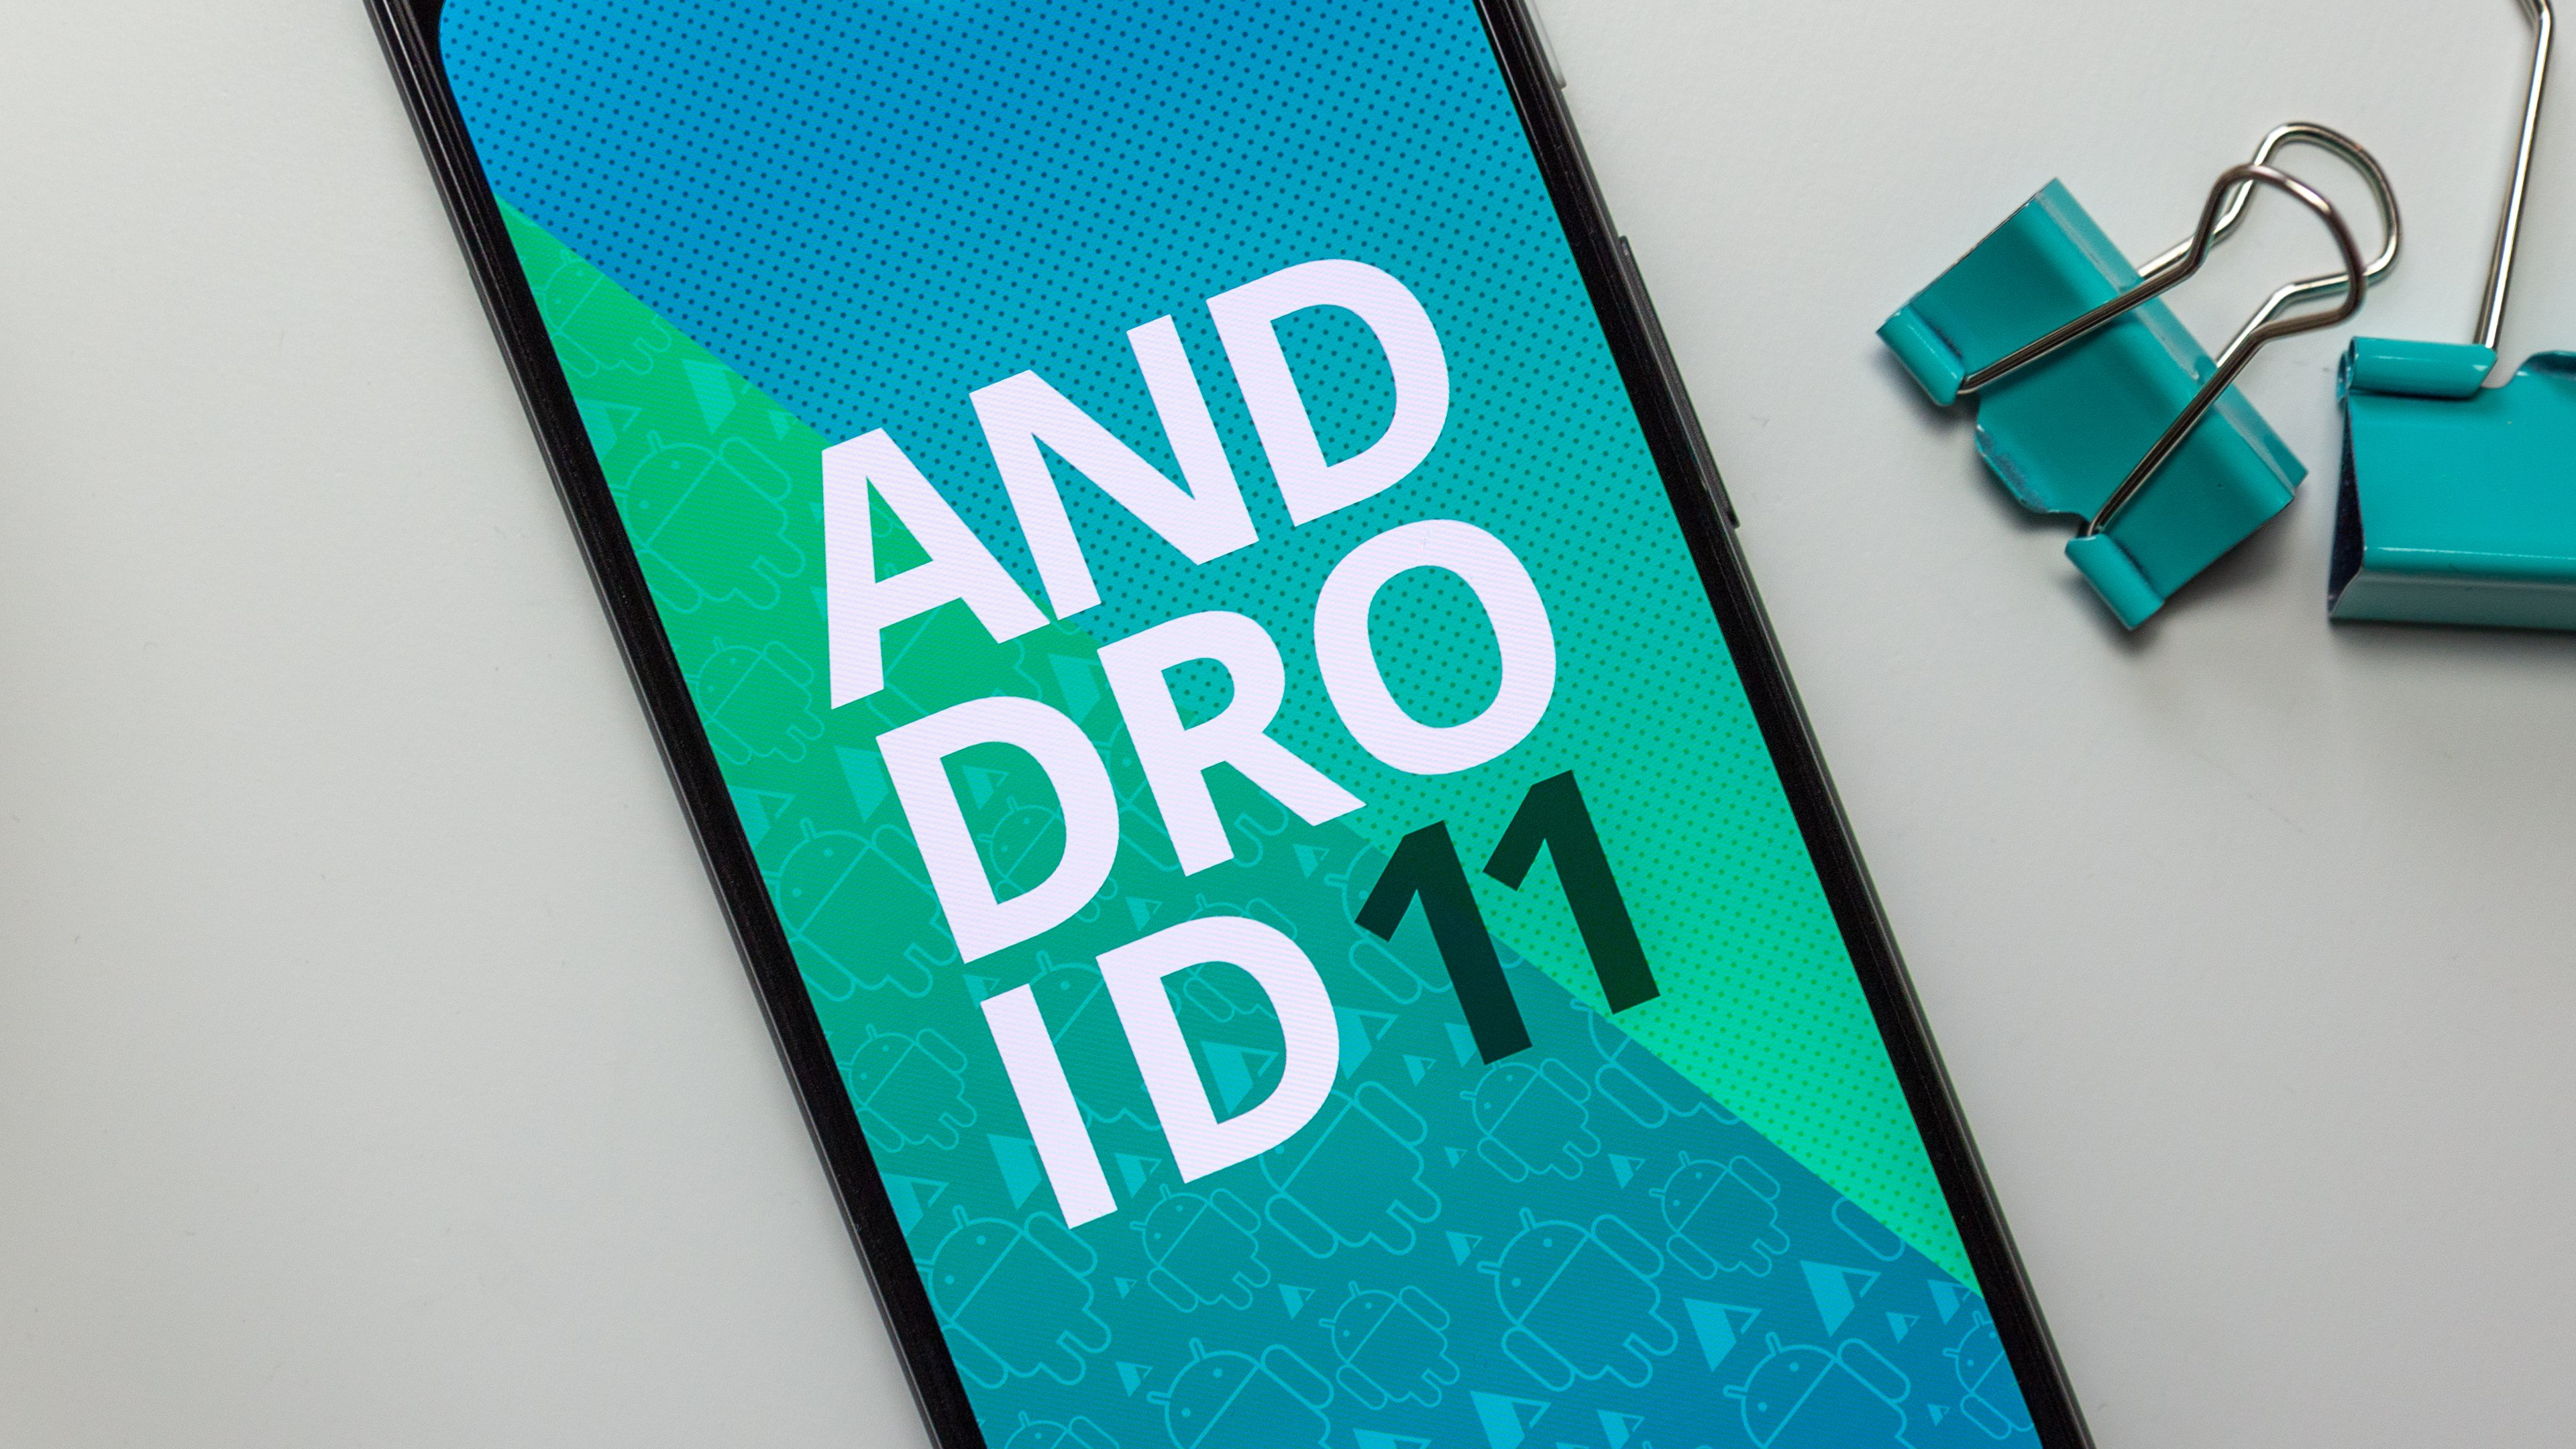 Android 11: what can we expect from Google's new big update?, Next TGP